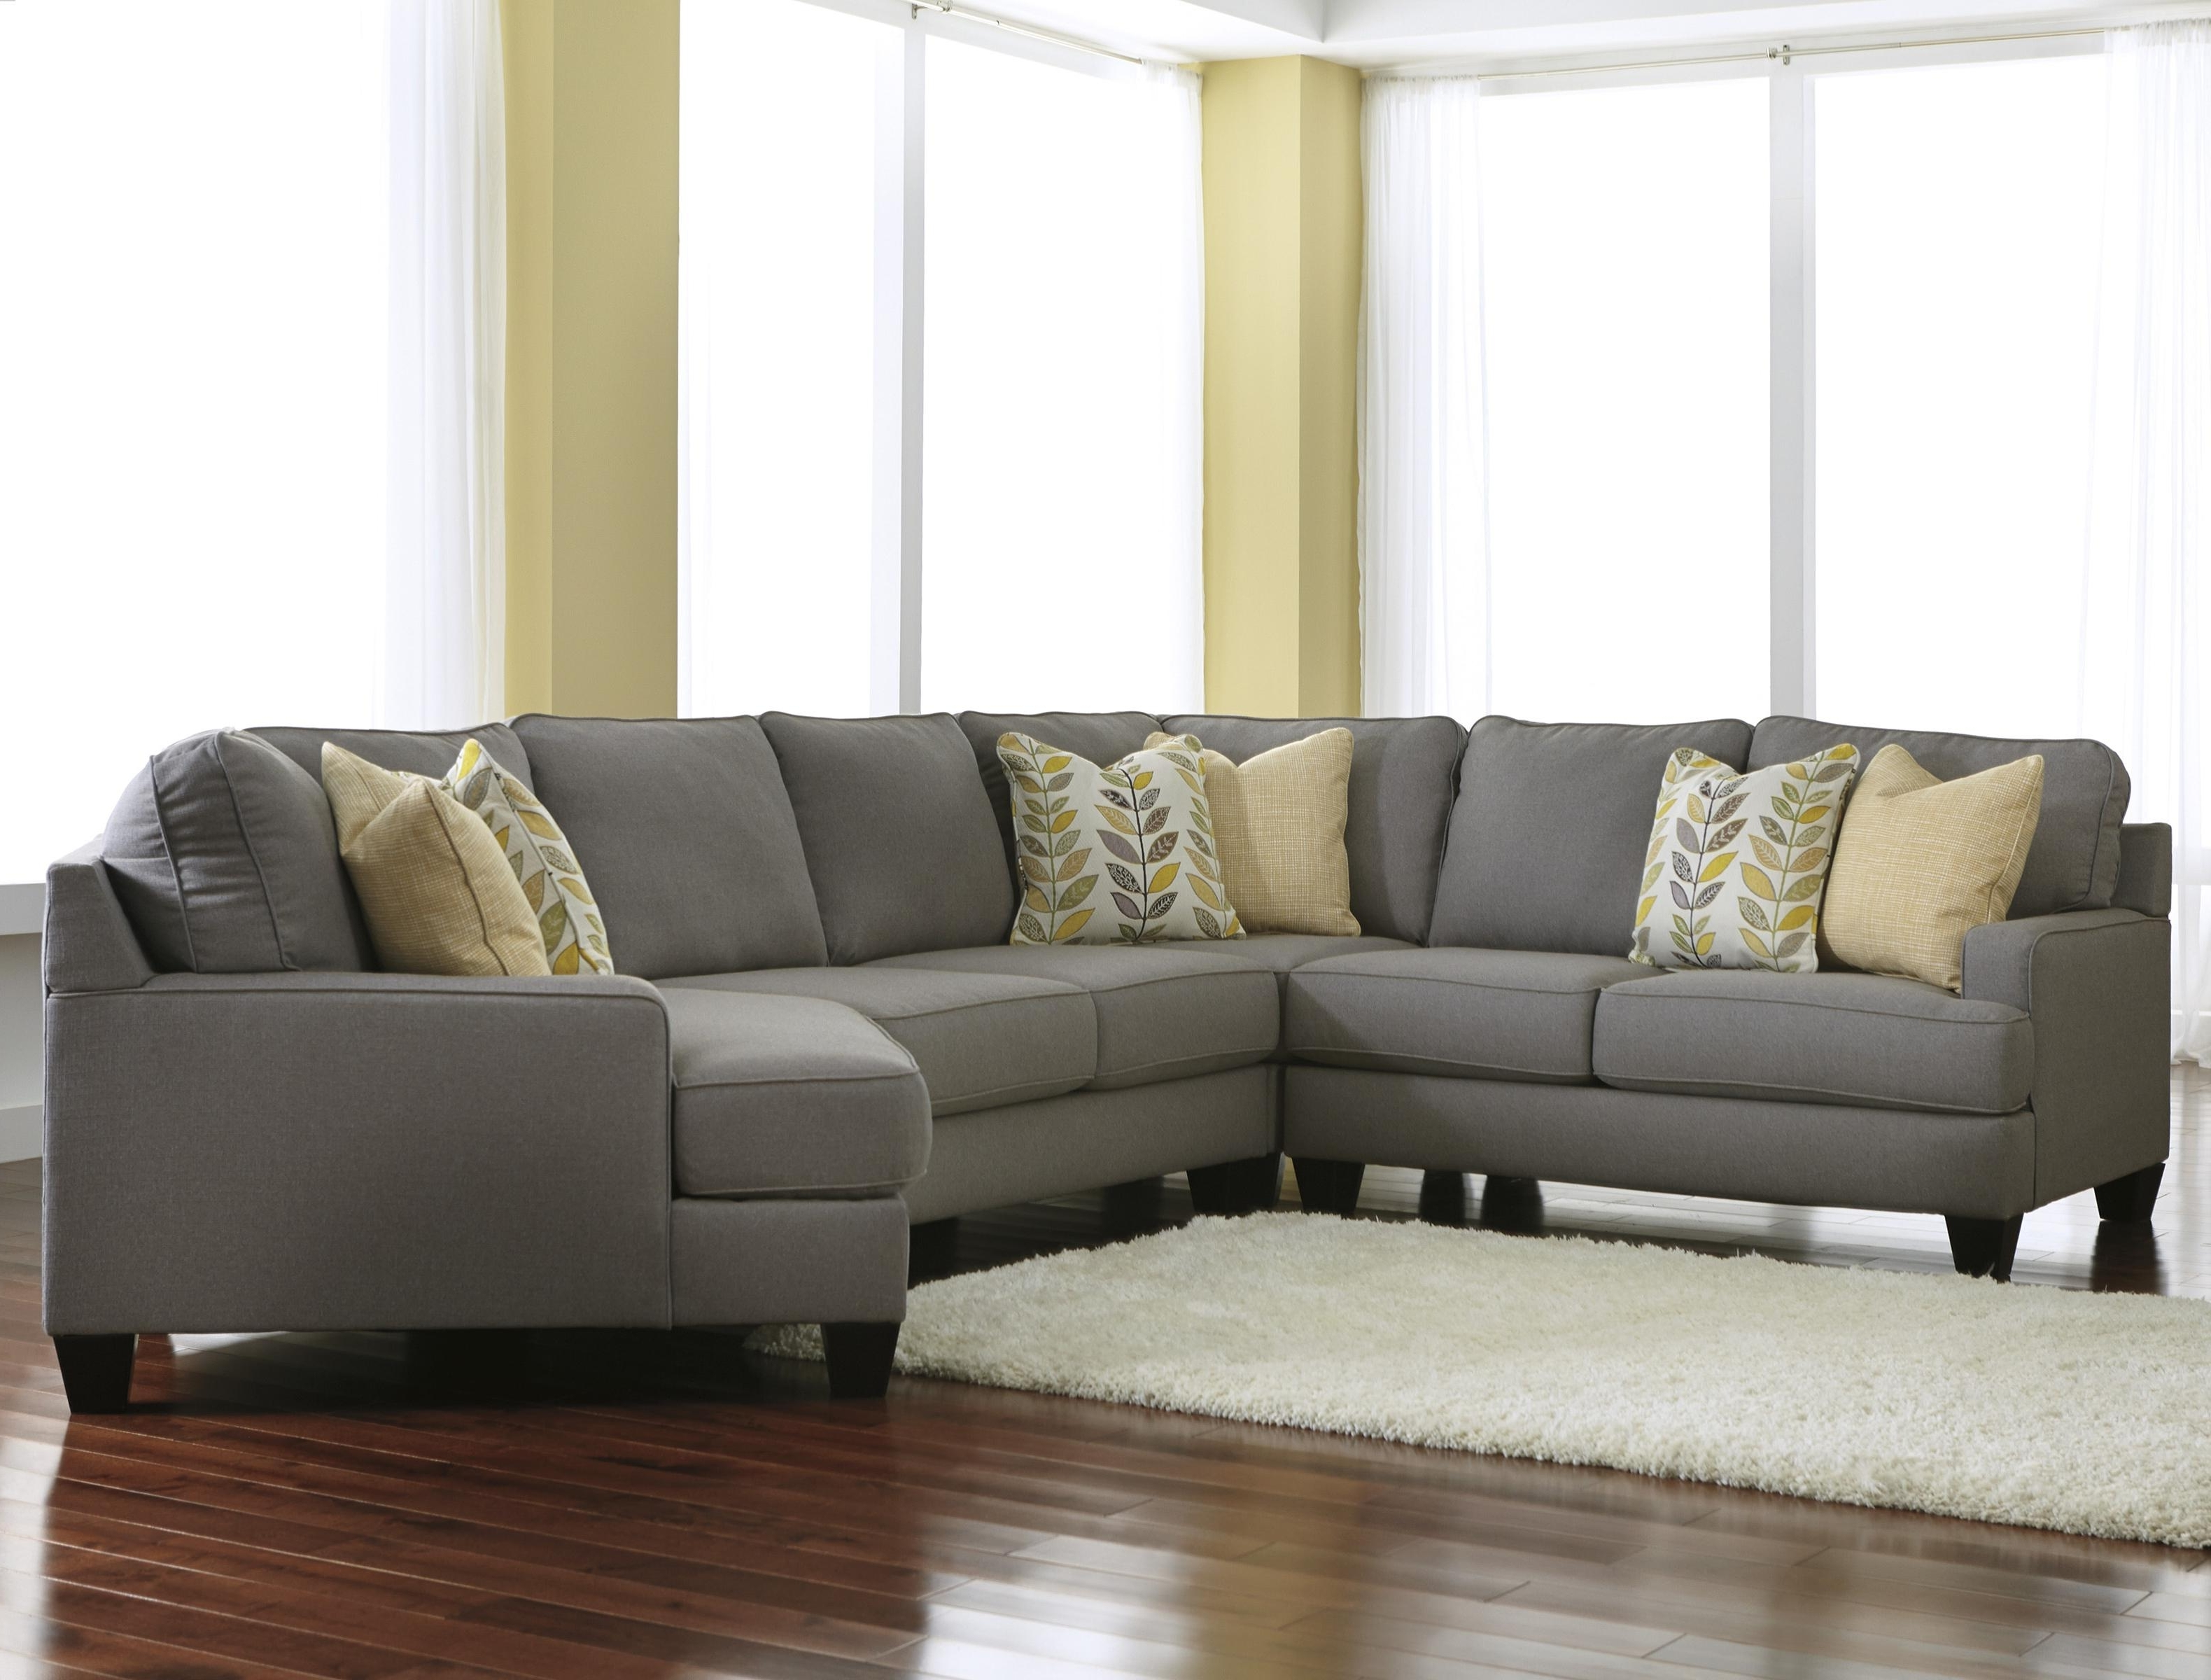 Cuddler Sectional Sofas Intended For Well Known Modern 4 Piece Sectional Sofa With Right Cuddler & Reversible Seat (View 10 of 15)